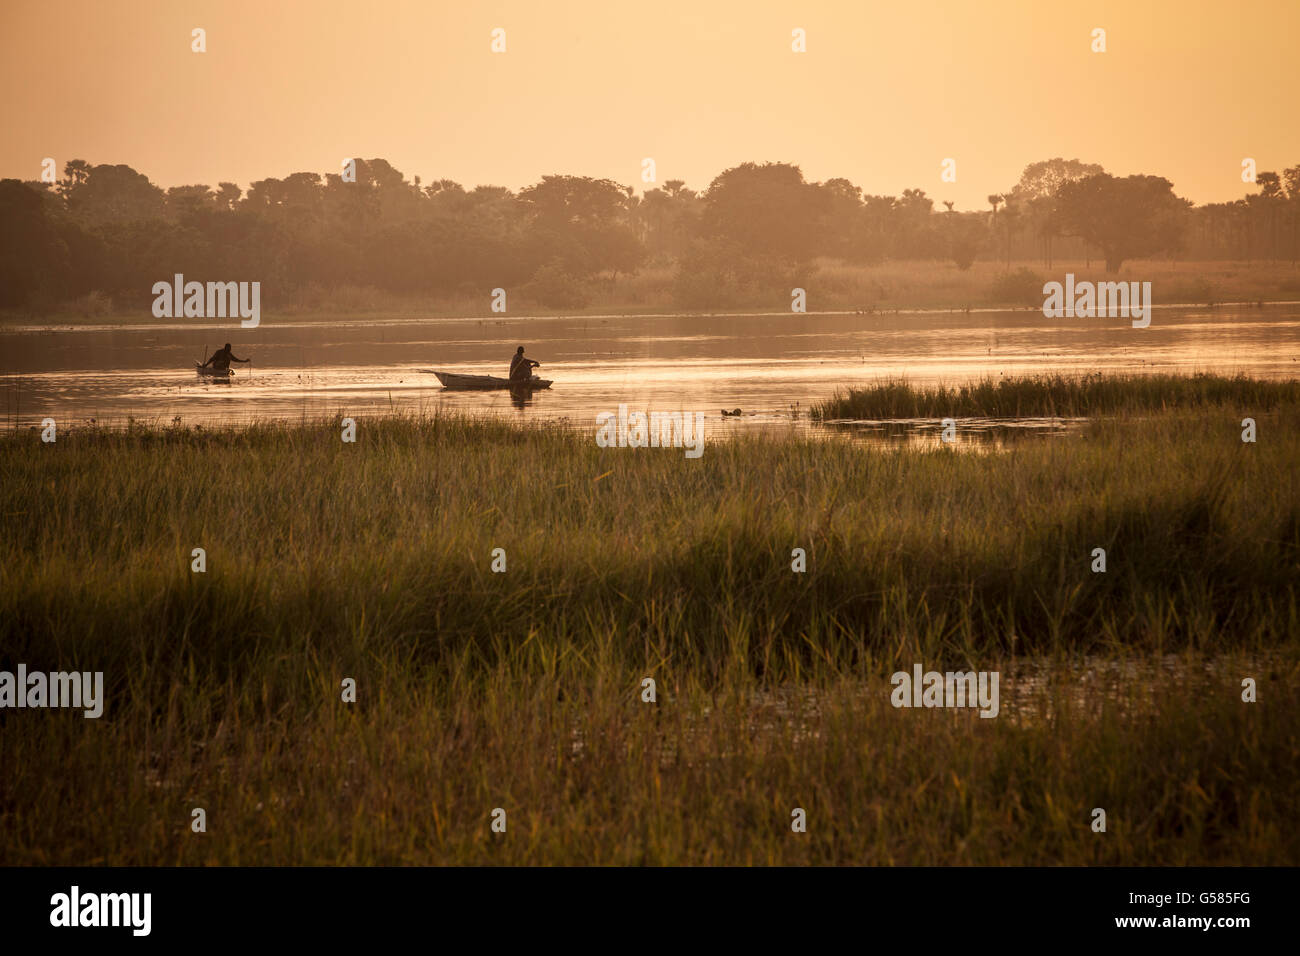 Lake Tengréla scene near Banfora, Burkina Faso. - Stock Image